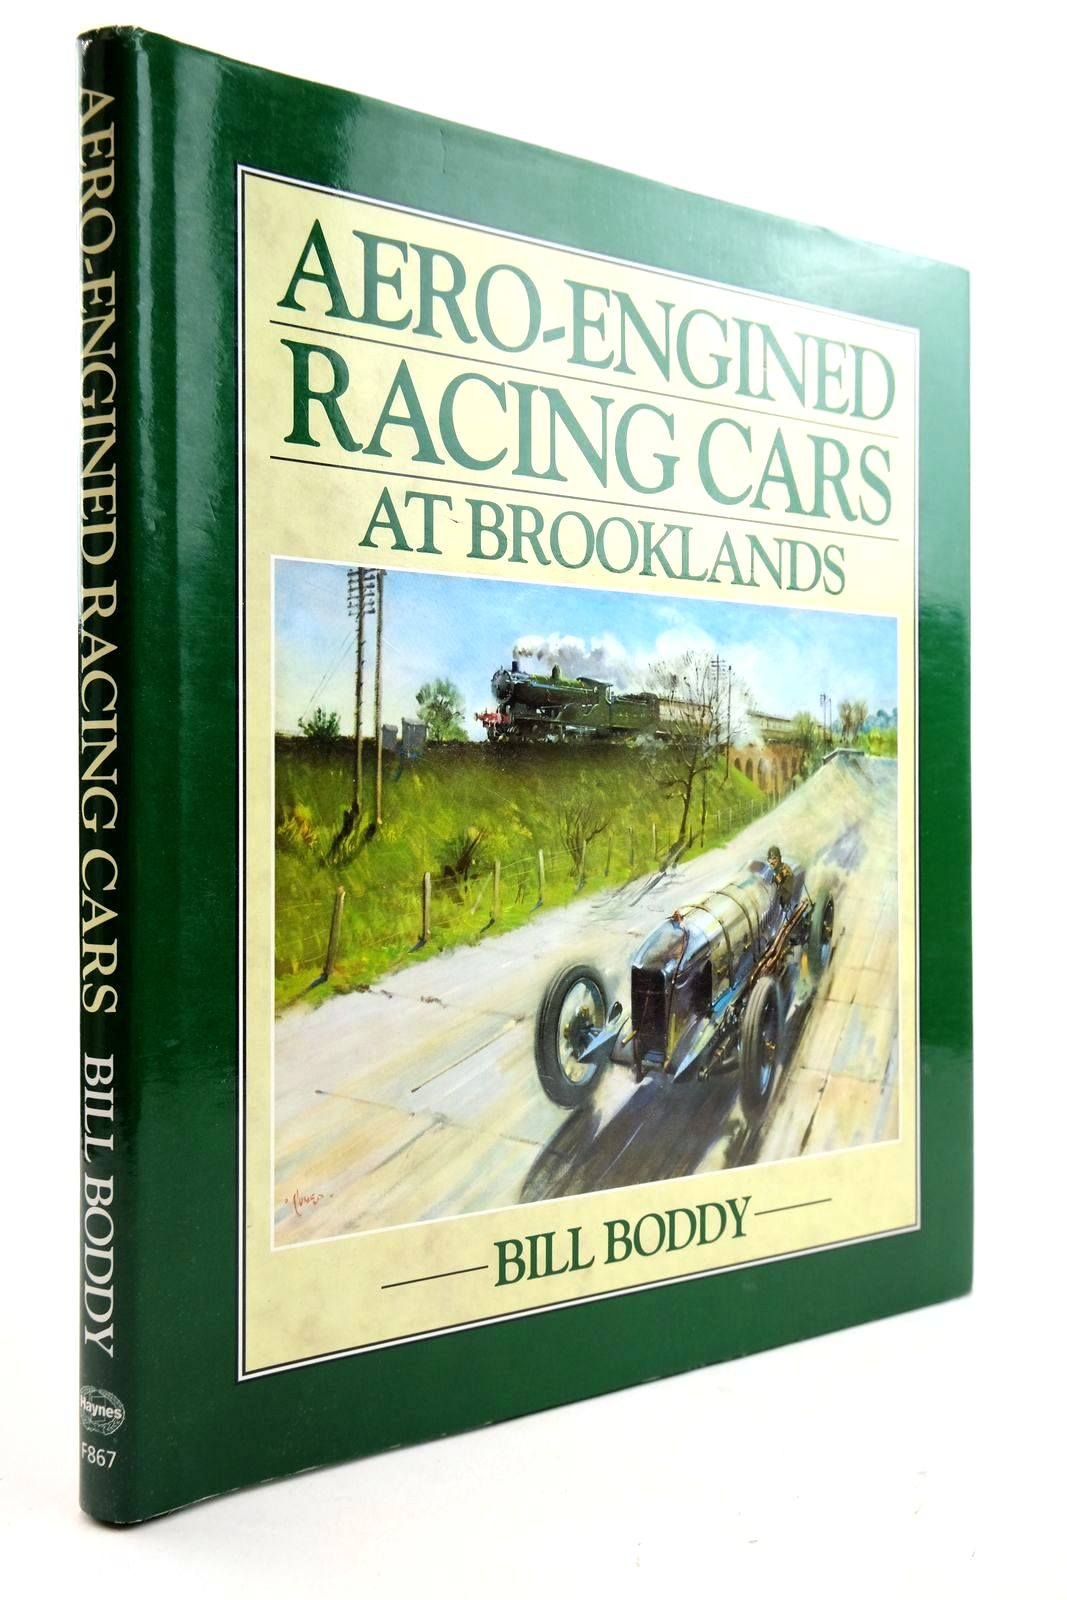 Photo of AERO-ENGINED RACING CARS AT BROOKLANDS written by Boddy, William published by Haynes Publishing Group (STOCK CODE: 2132906)  for sale by Stella & Rose's Books